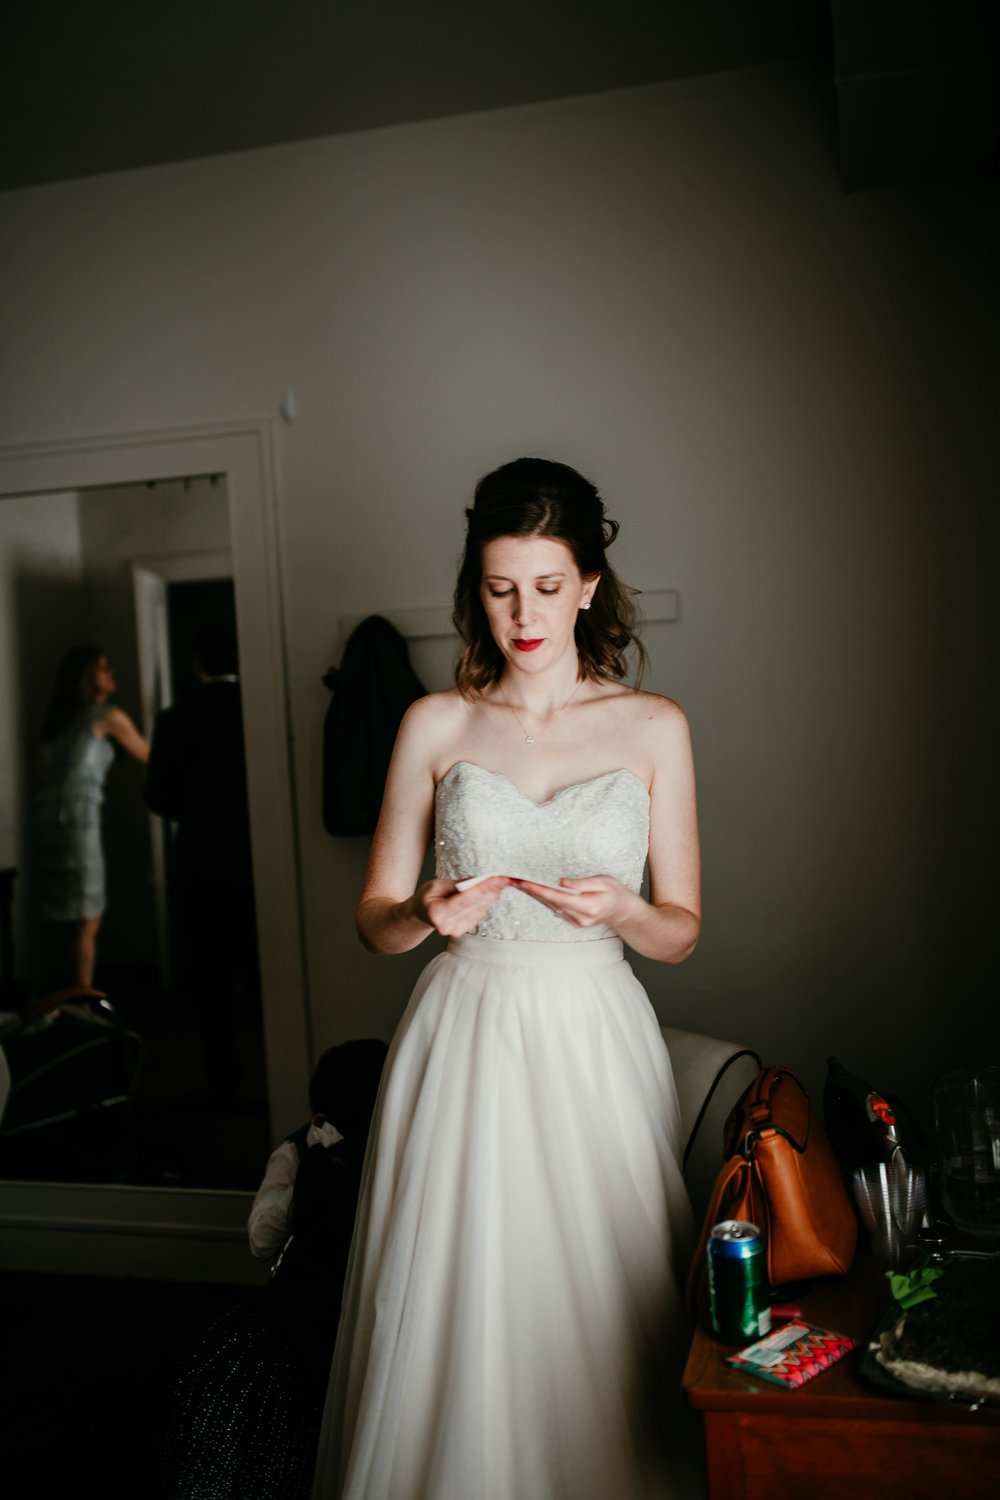 Bride reading a letter before walking down the aisle | Shelbie & Jospeh's Summer Love Story : Kansas City Wedding | Hanna Hill Photography